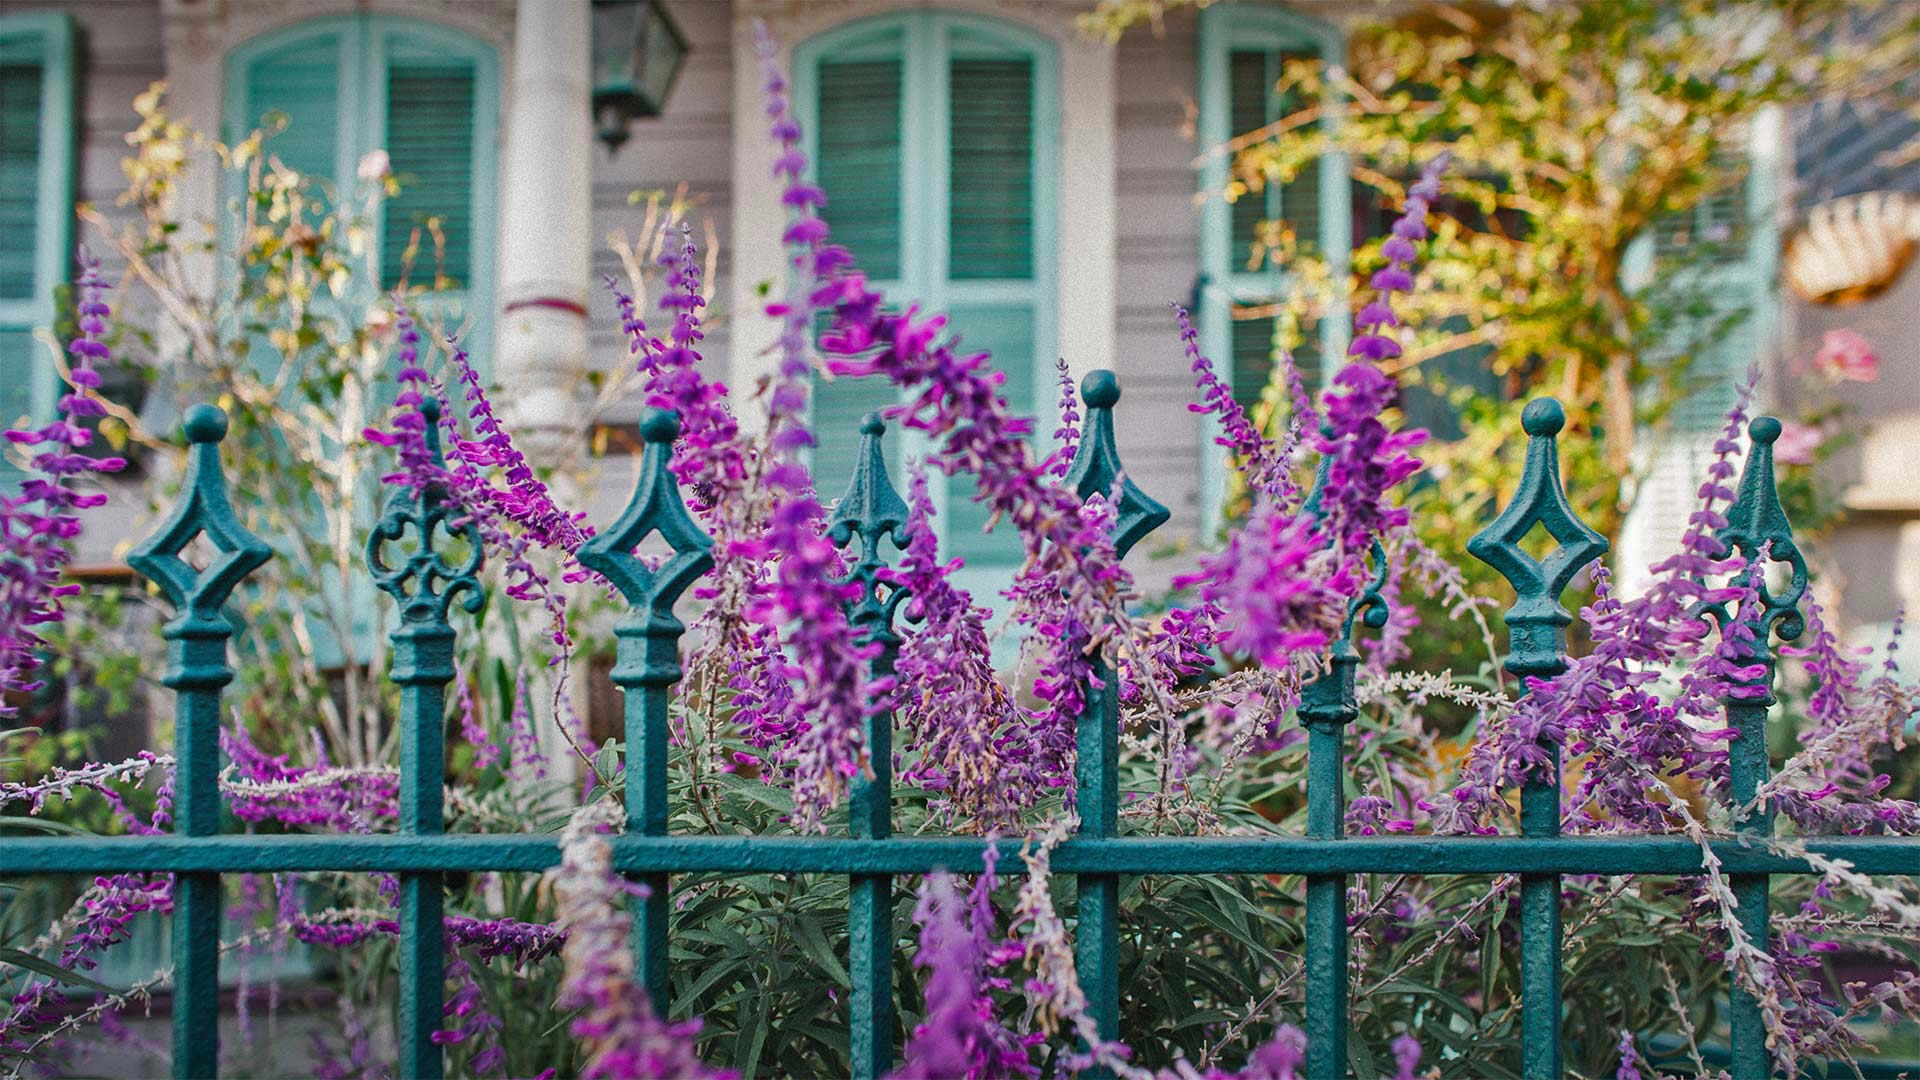 Flowers and an ironwork fence in front of a house in New Orleans, Louisiana (© Lauren Mitchell/Offset by Shutterstock)(Bing United States)